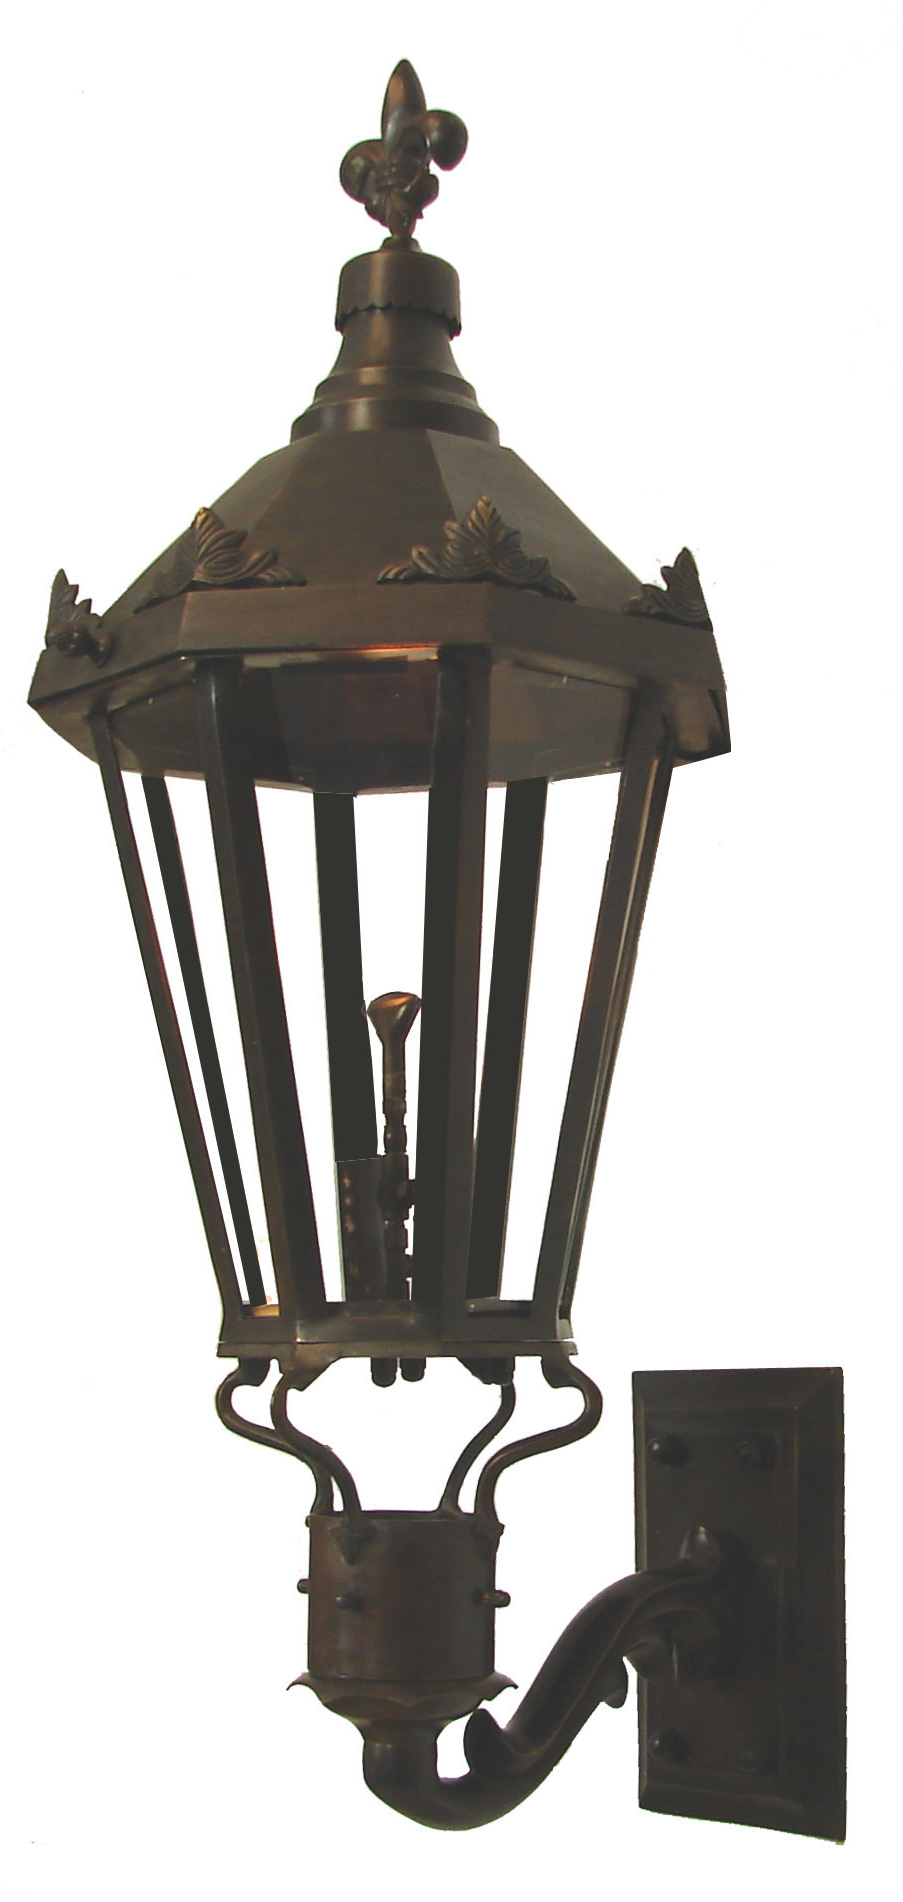 Windsor antique bronze wall mount the gas light company windsor antique bronze wall mount arubaitofo Images